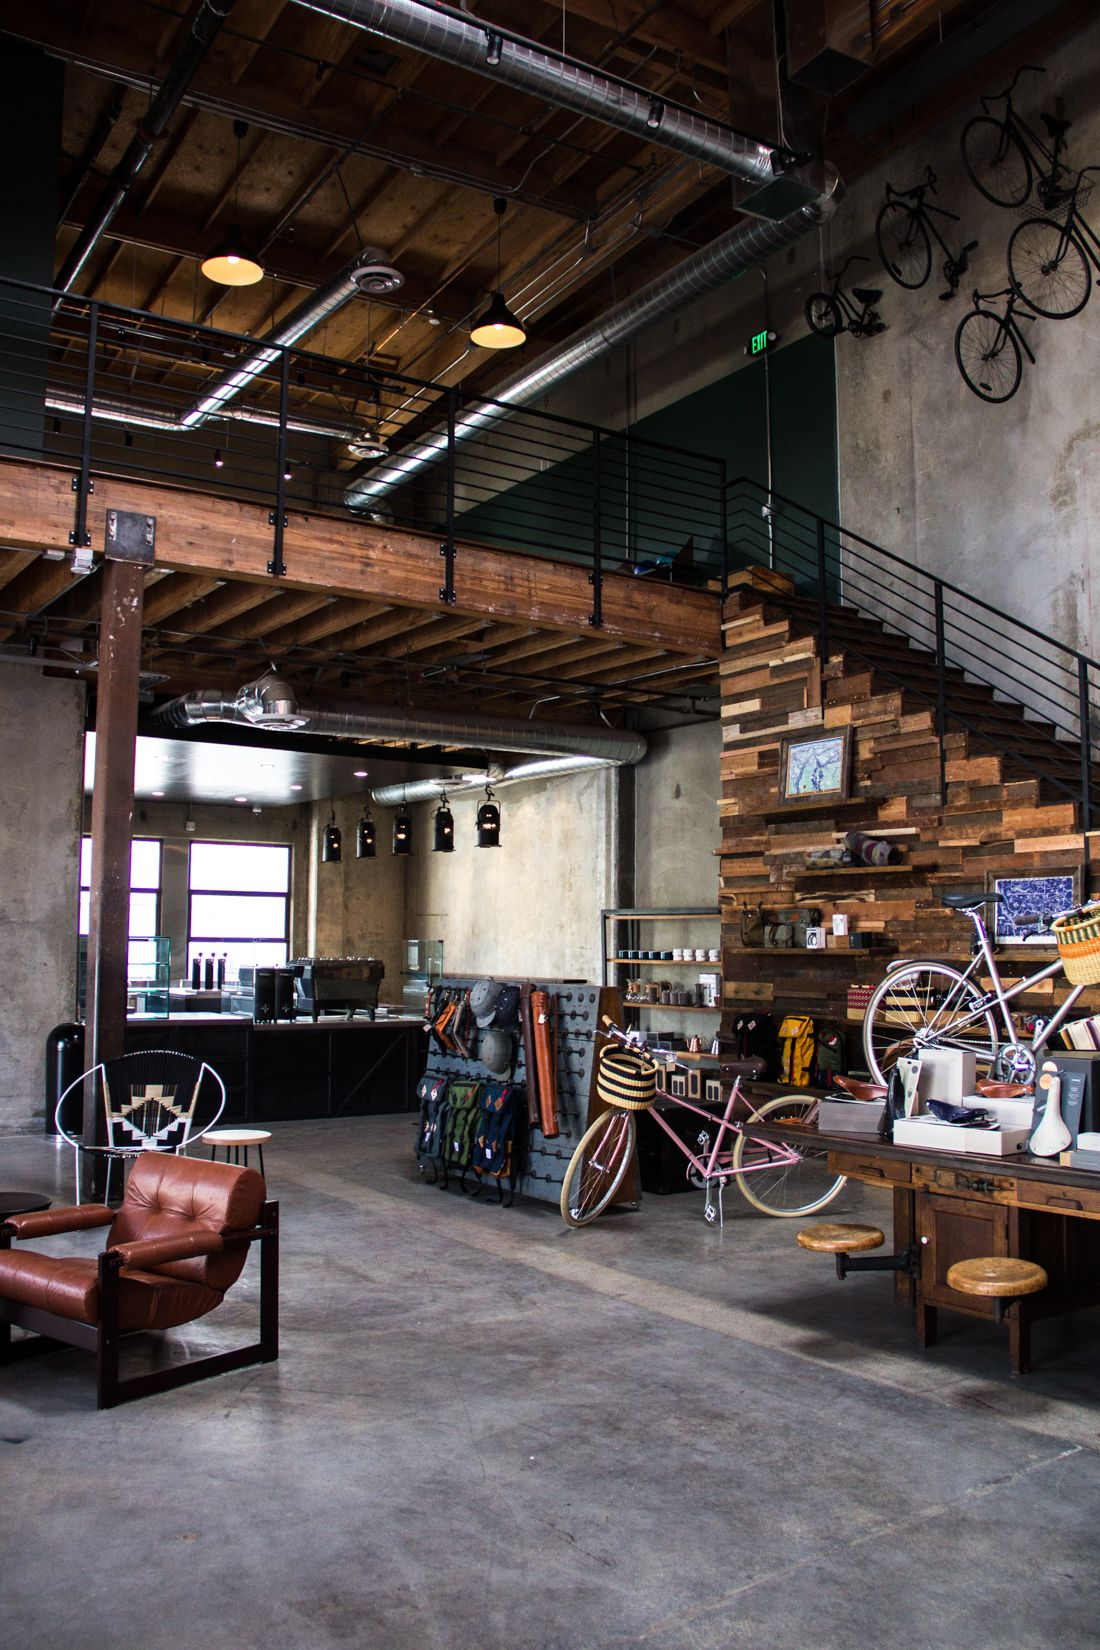 Industrial Style Shop : the wheelhouse bringing together bicycles and coffee commercial hospitality house design ~ Frokenaadalensverden.com Haus und Dekorationen